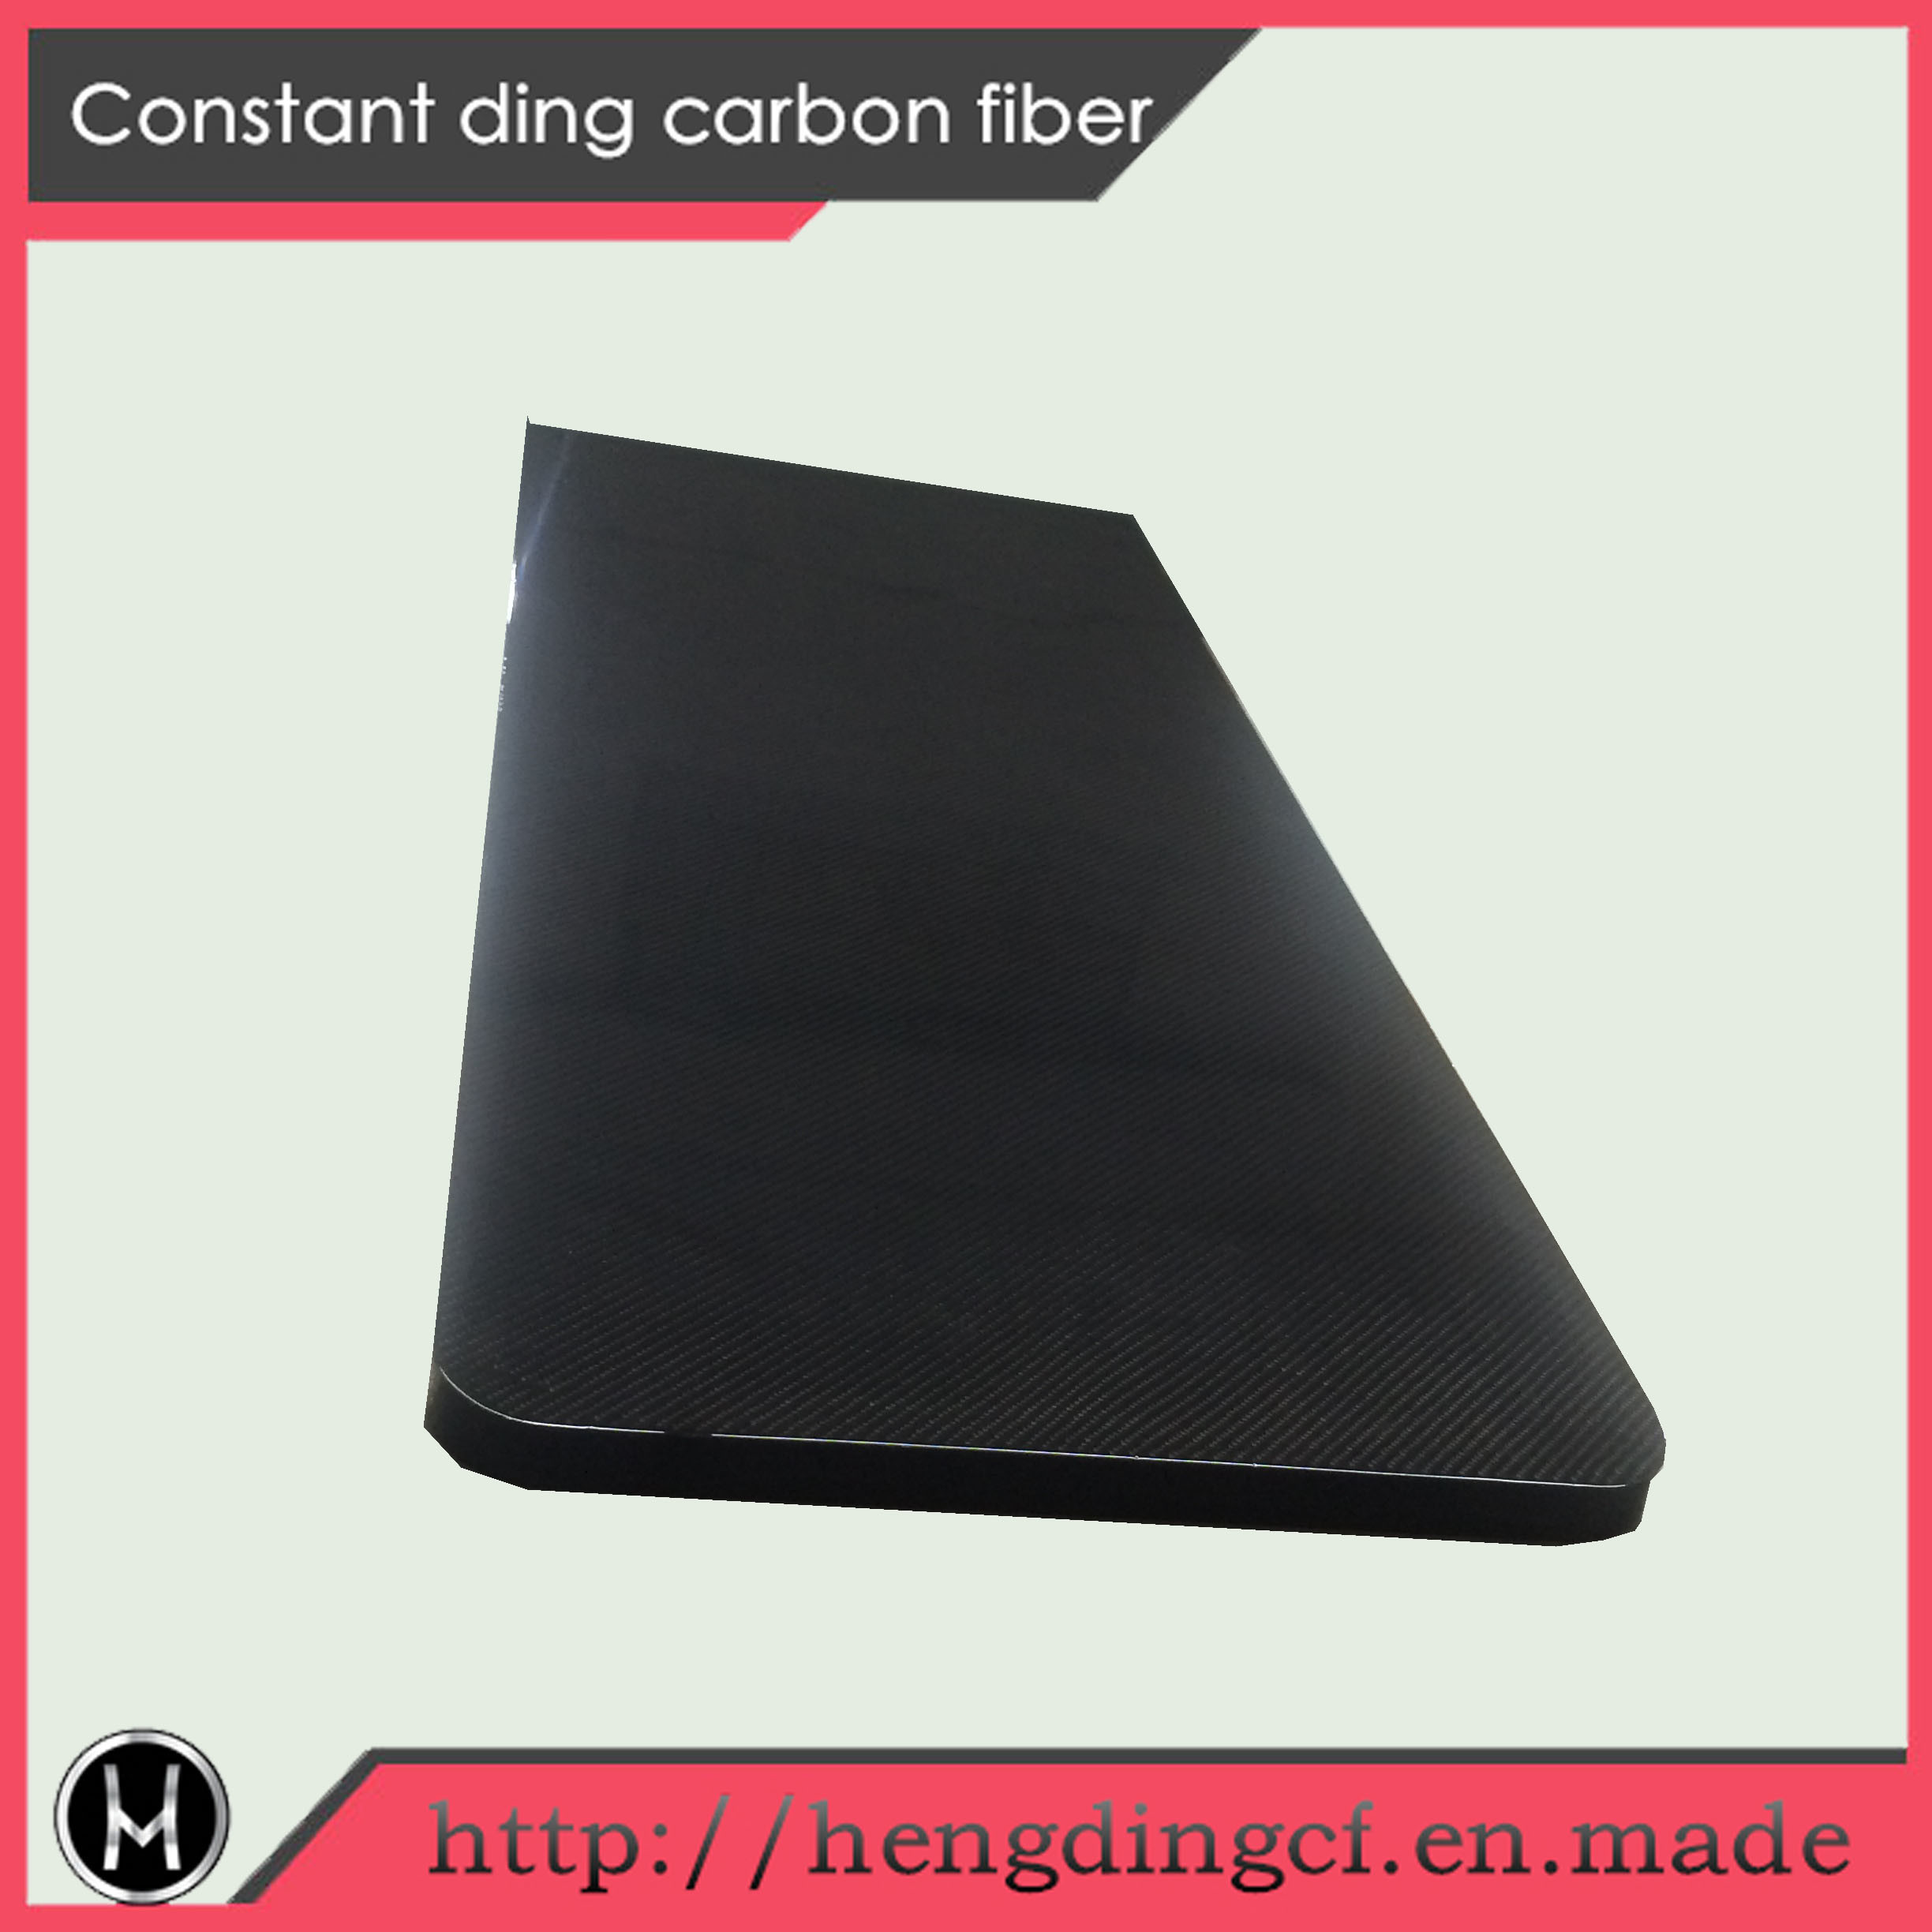 Wear-Resisting Antistatic Medical Carbon Fiber Board